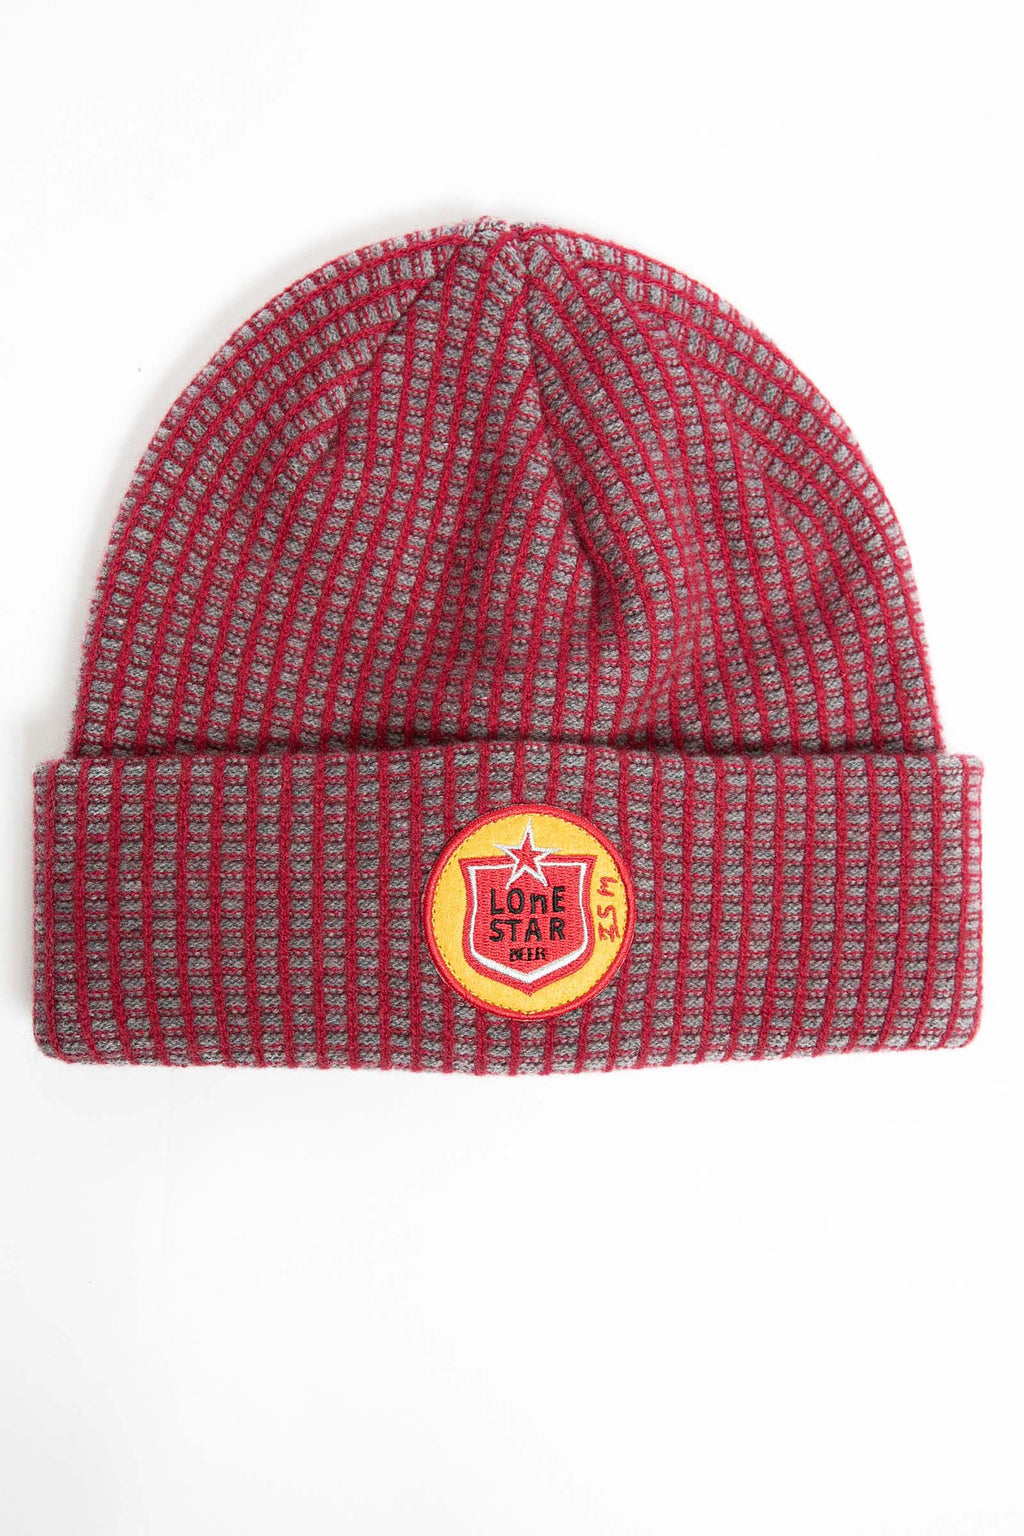 I.S.M. 'Lone Star' Red Cashmere Beanie